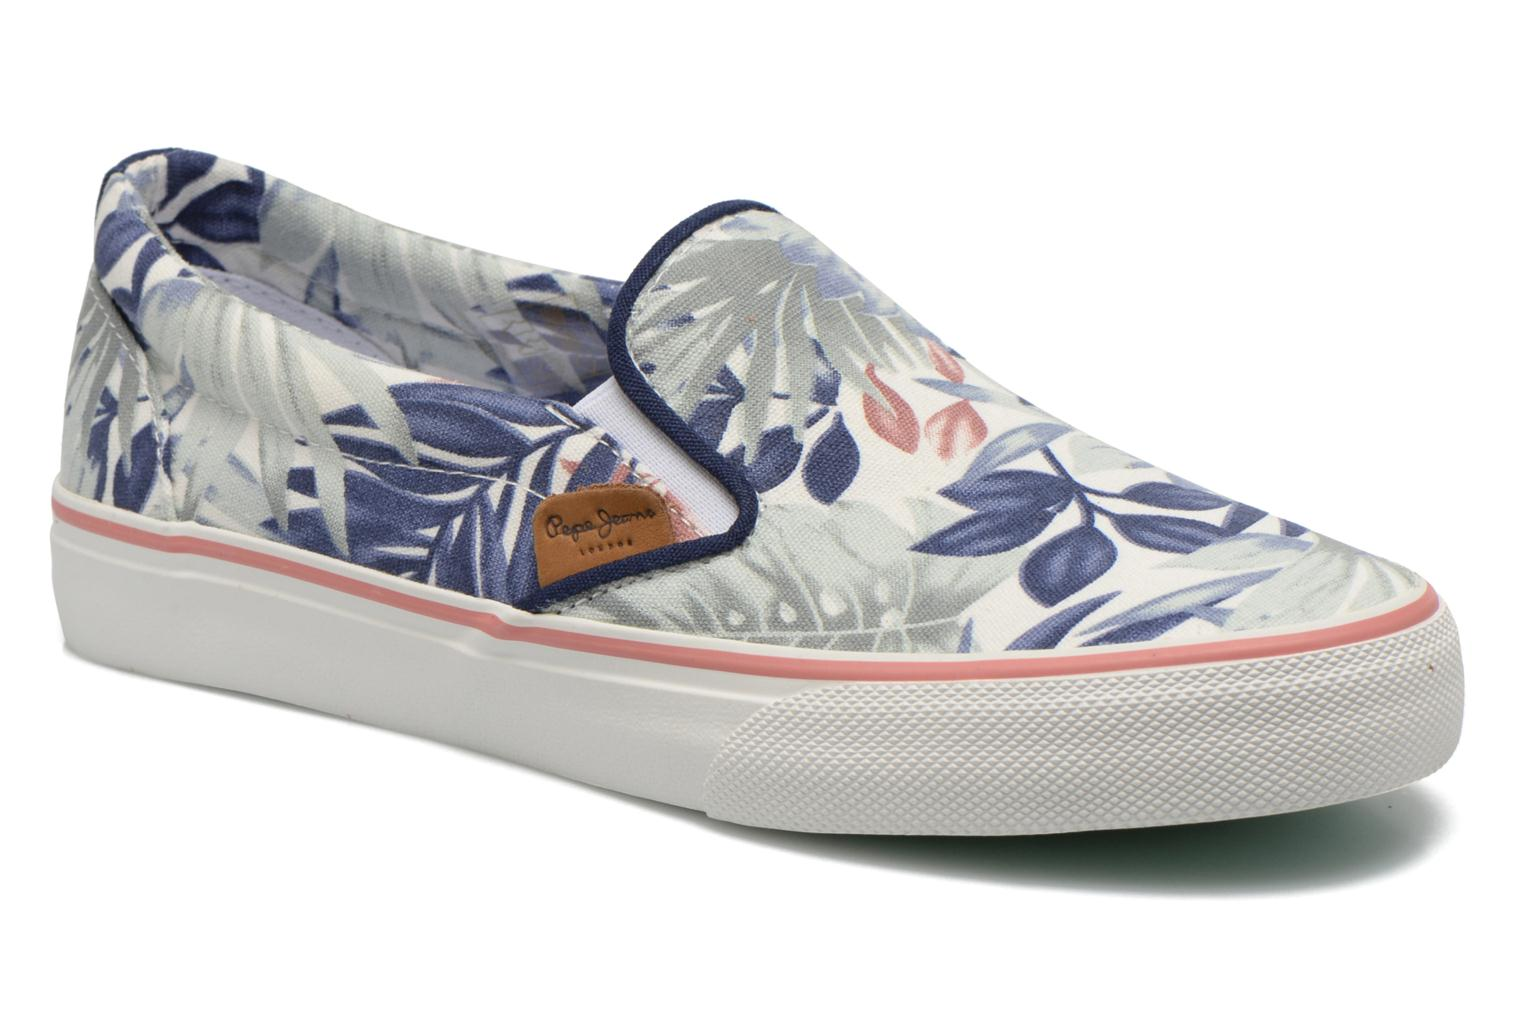 Sneakers Pepe jeans Alford Jungle Multicolor detail